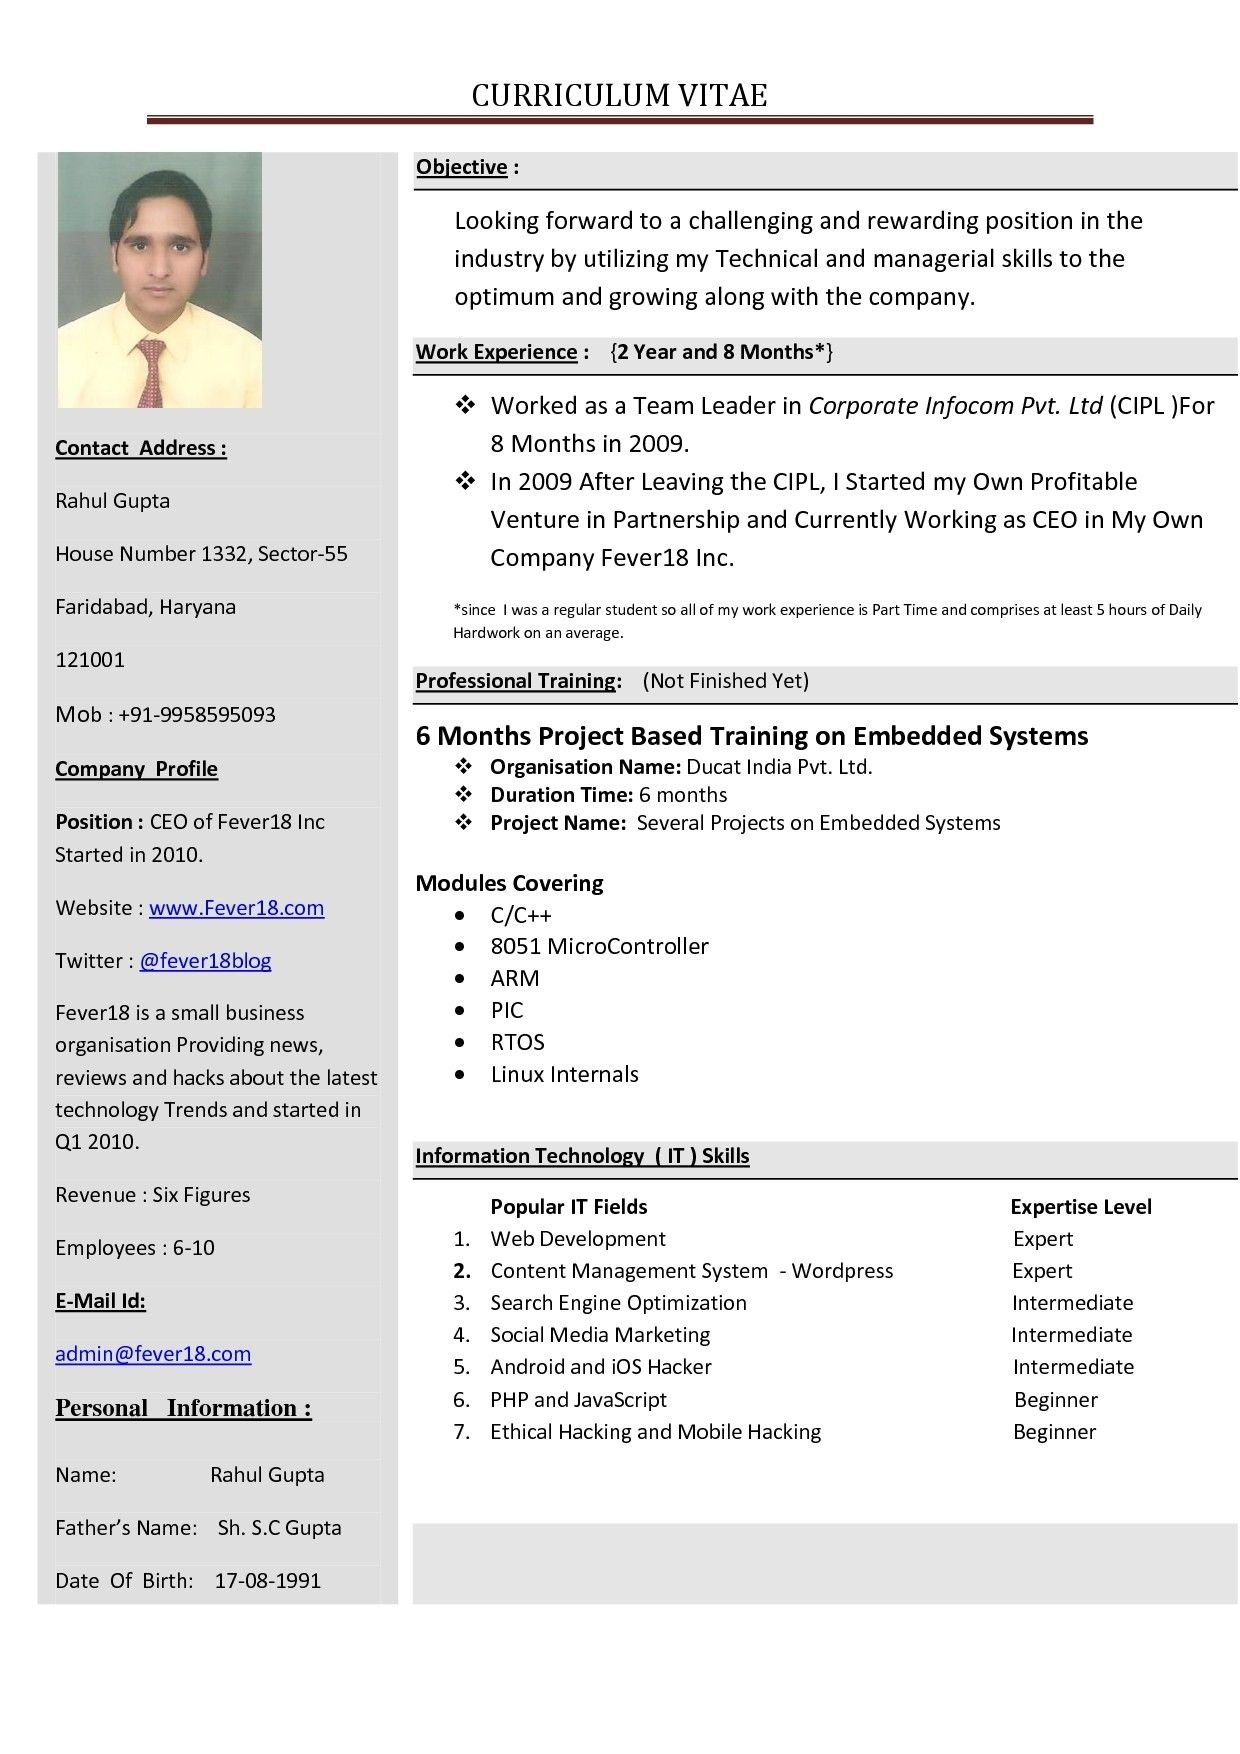 New New resume format, How to make resume, Resume format